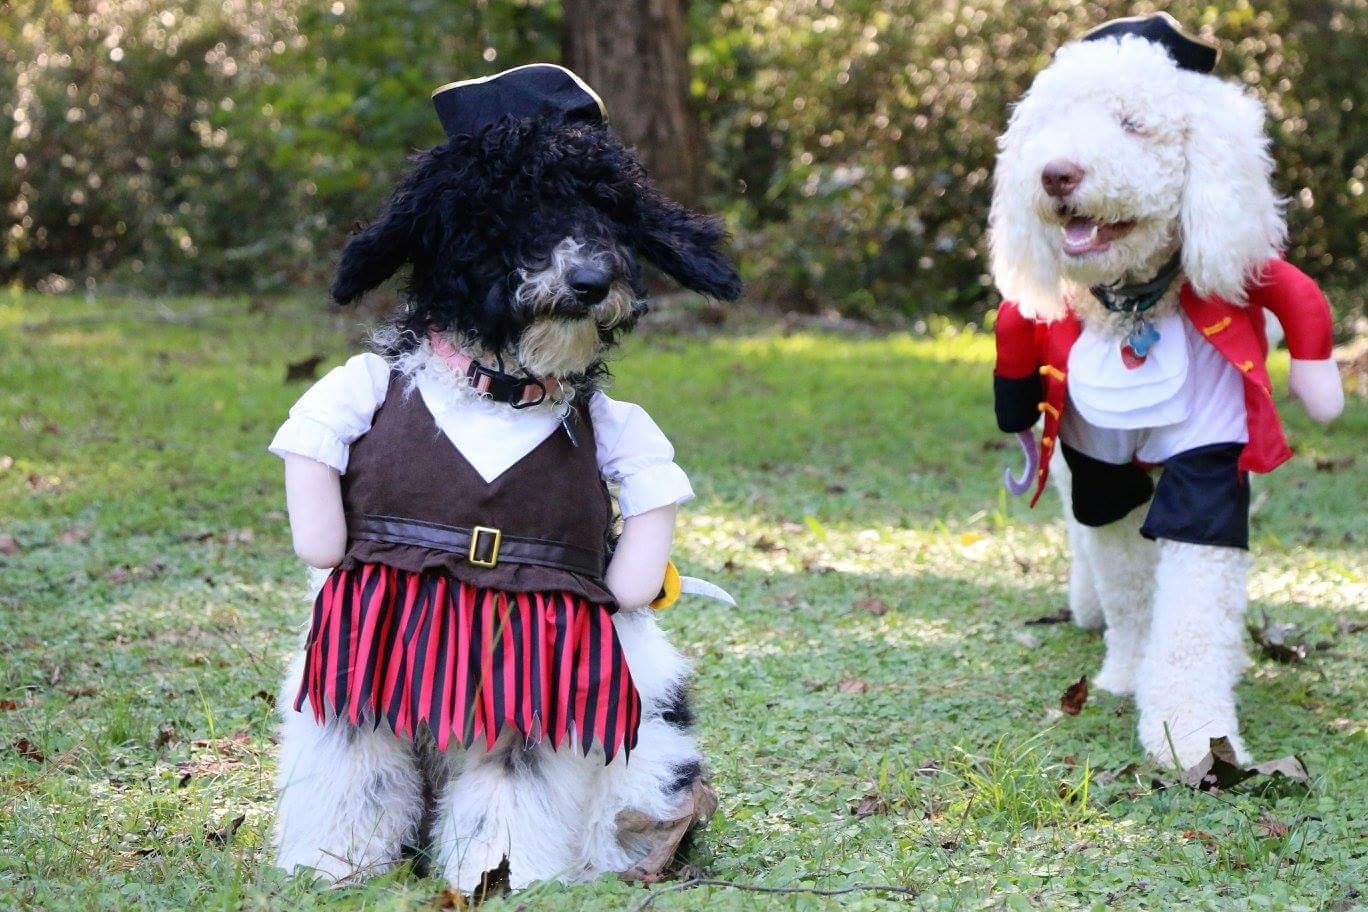 Image perceived to contain Animal, Canine, Dog, Mammal, Pet, Poodle, Costume, Adorable on the 's Pet Costume Contest 2017! - Atlanta & Kennesaw GA Web Design page